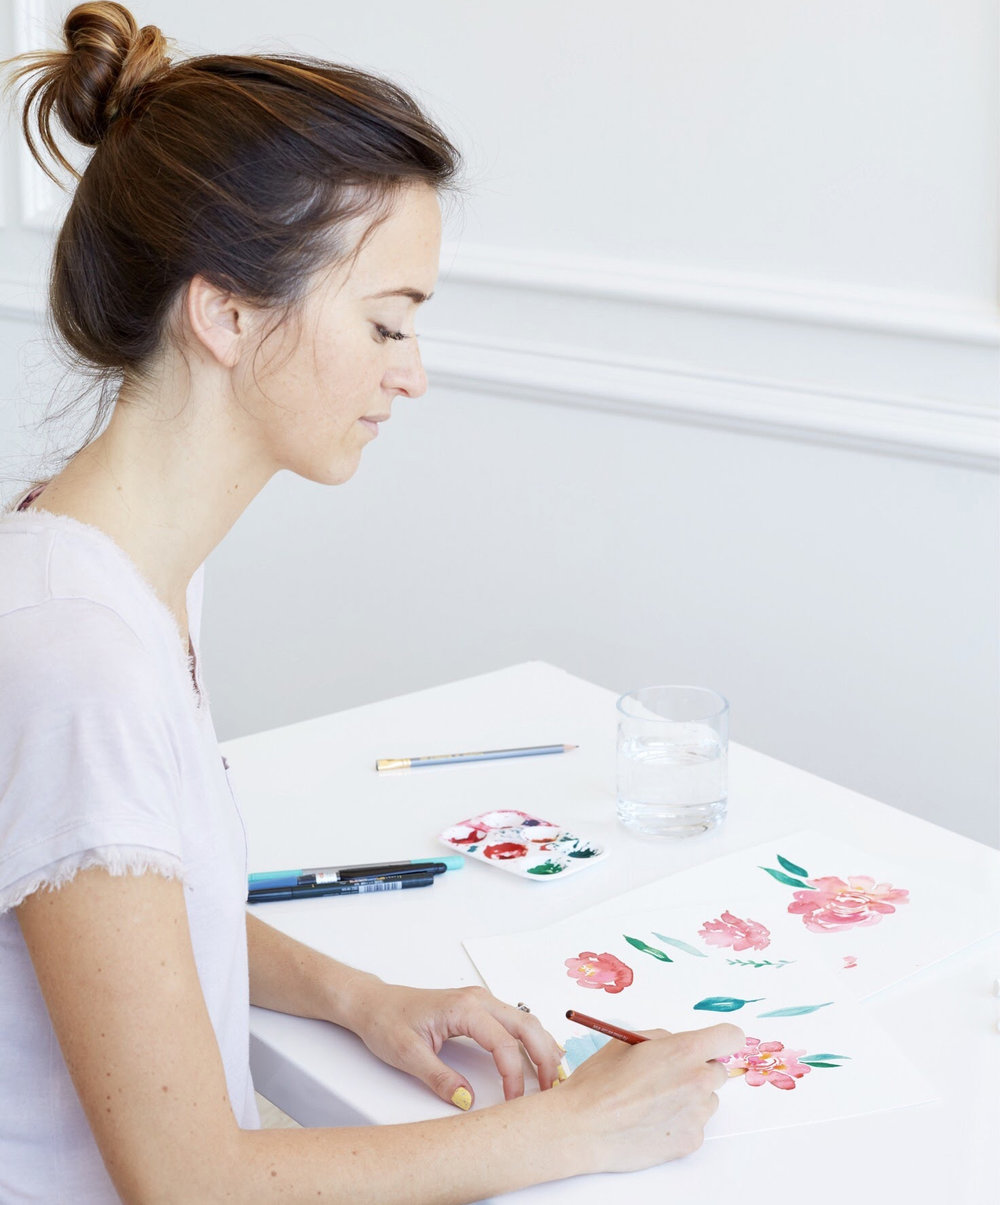 I don't usually look this serious when I watercolor, promise.